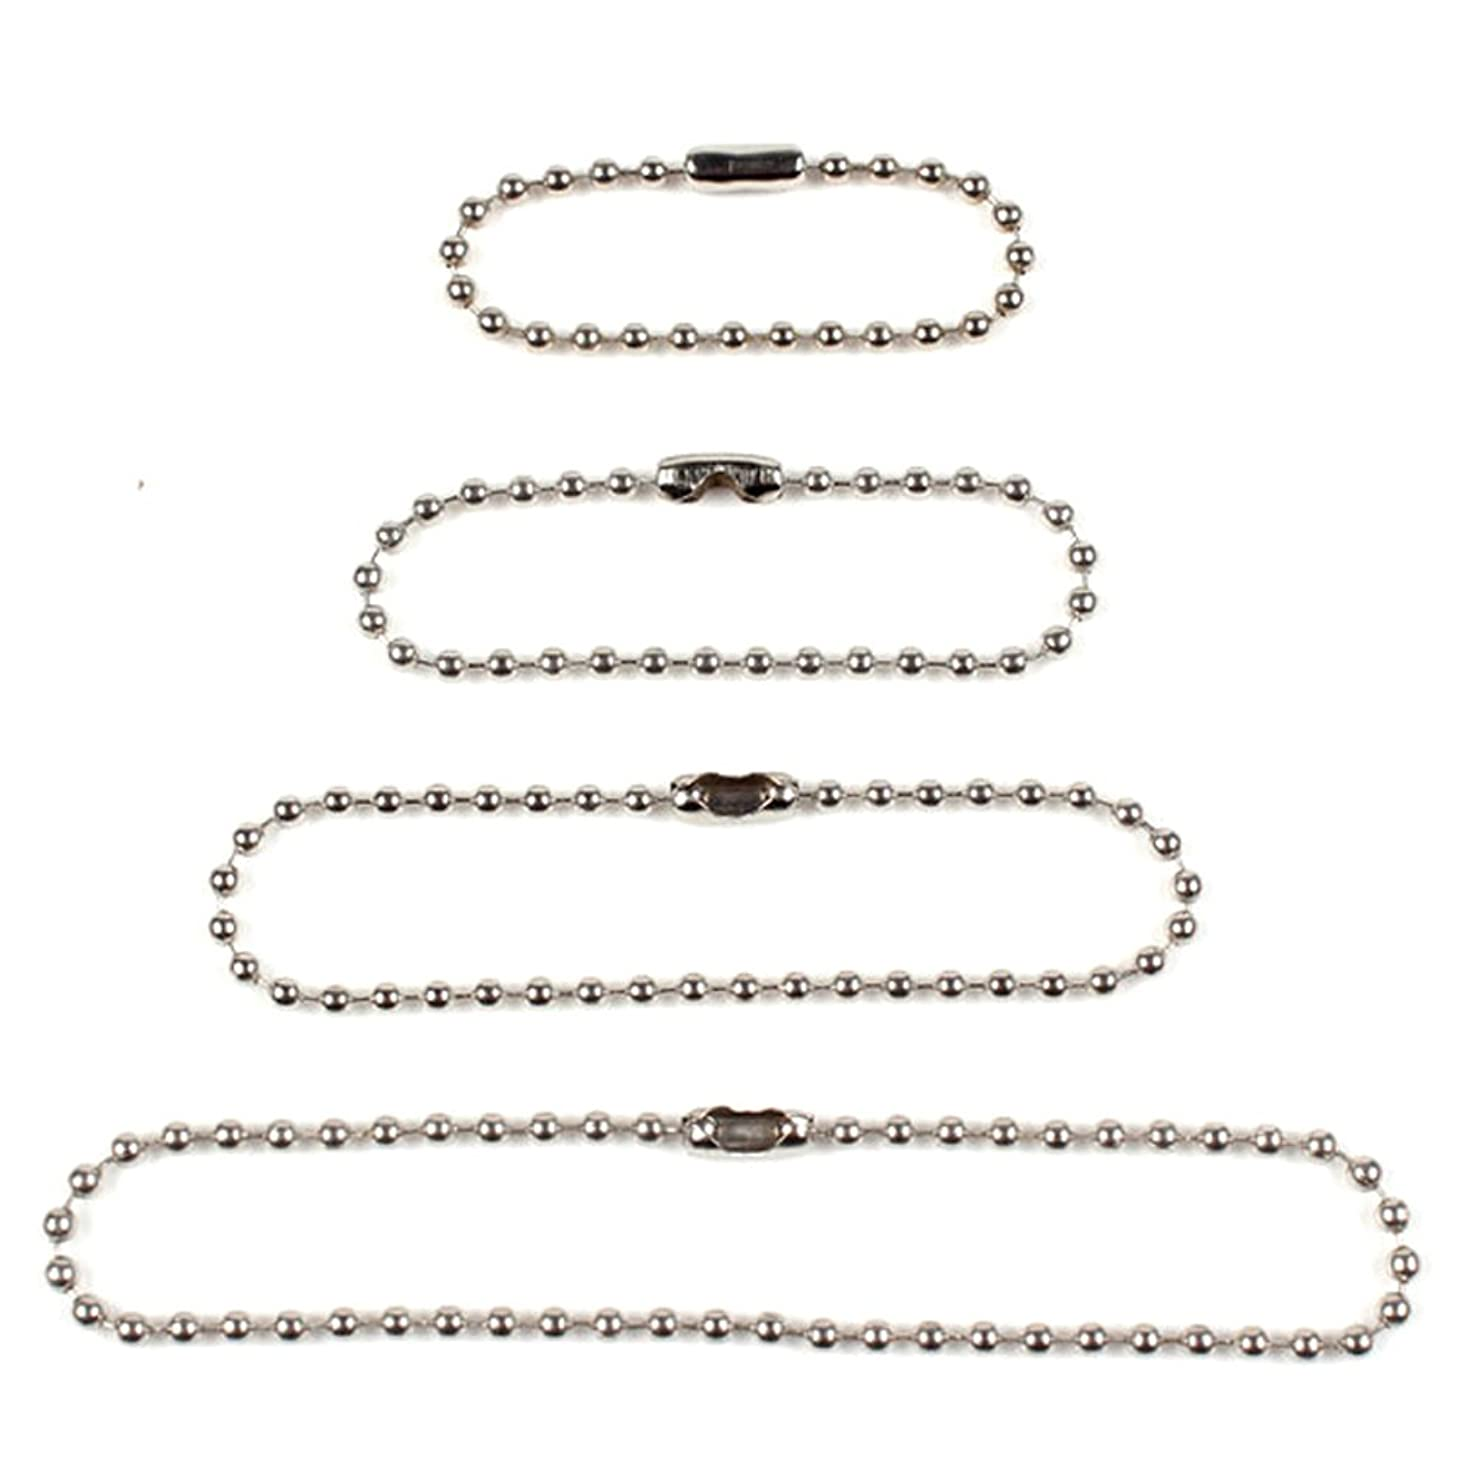 Ginooars Pack of 100 Bead Chains Bead Connector Clasp Ball Chains -25pcs Each Size 4 Different Size: 100mm/120mm/150mm/200mm